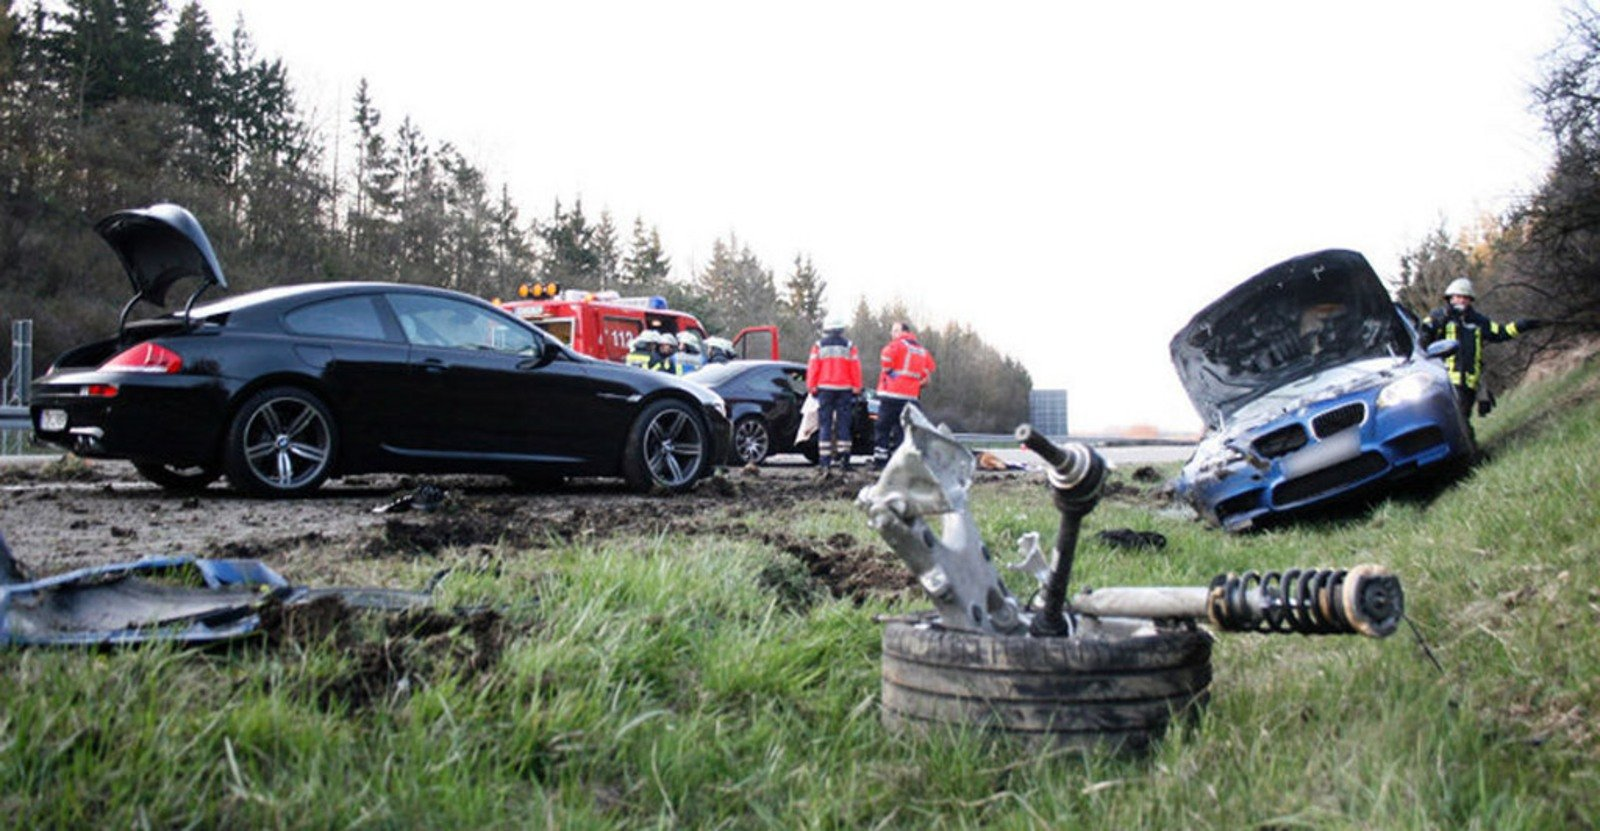 Bmw M5 News And Reviews Top Speed 2013 Fuse Box 2012 Wrecked Following Horrific Autobahn Crash